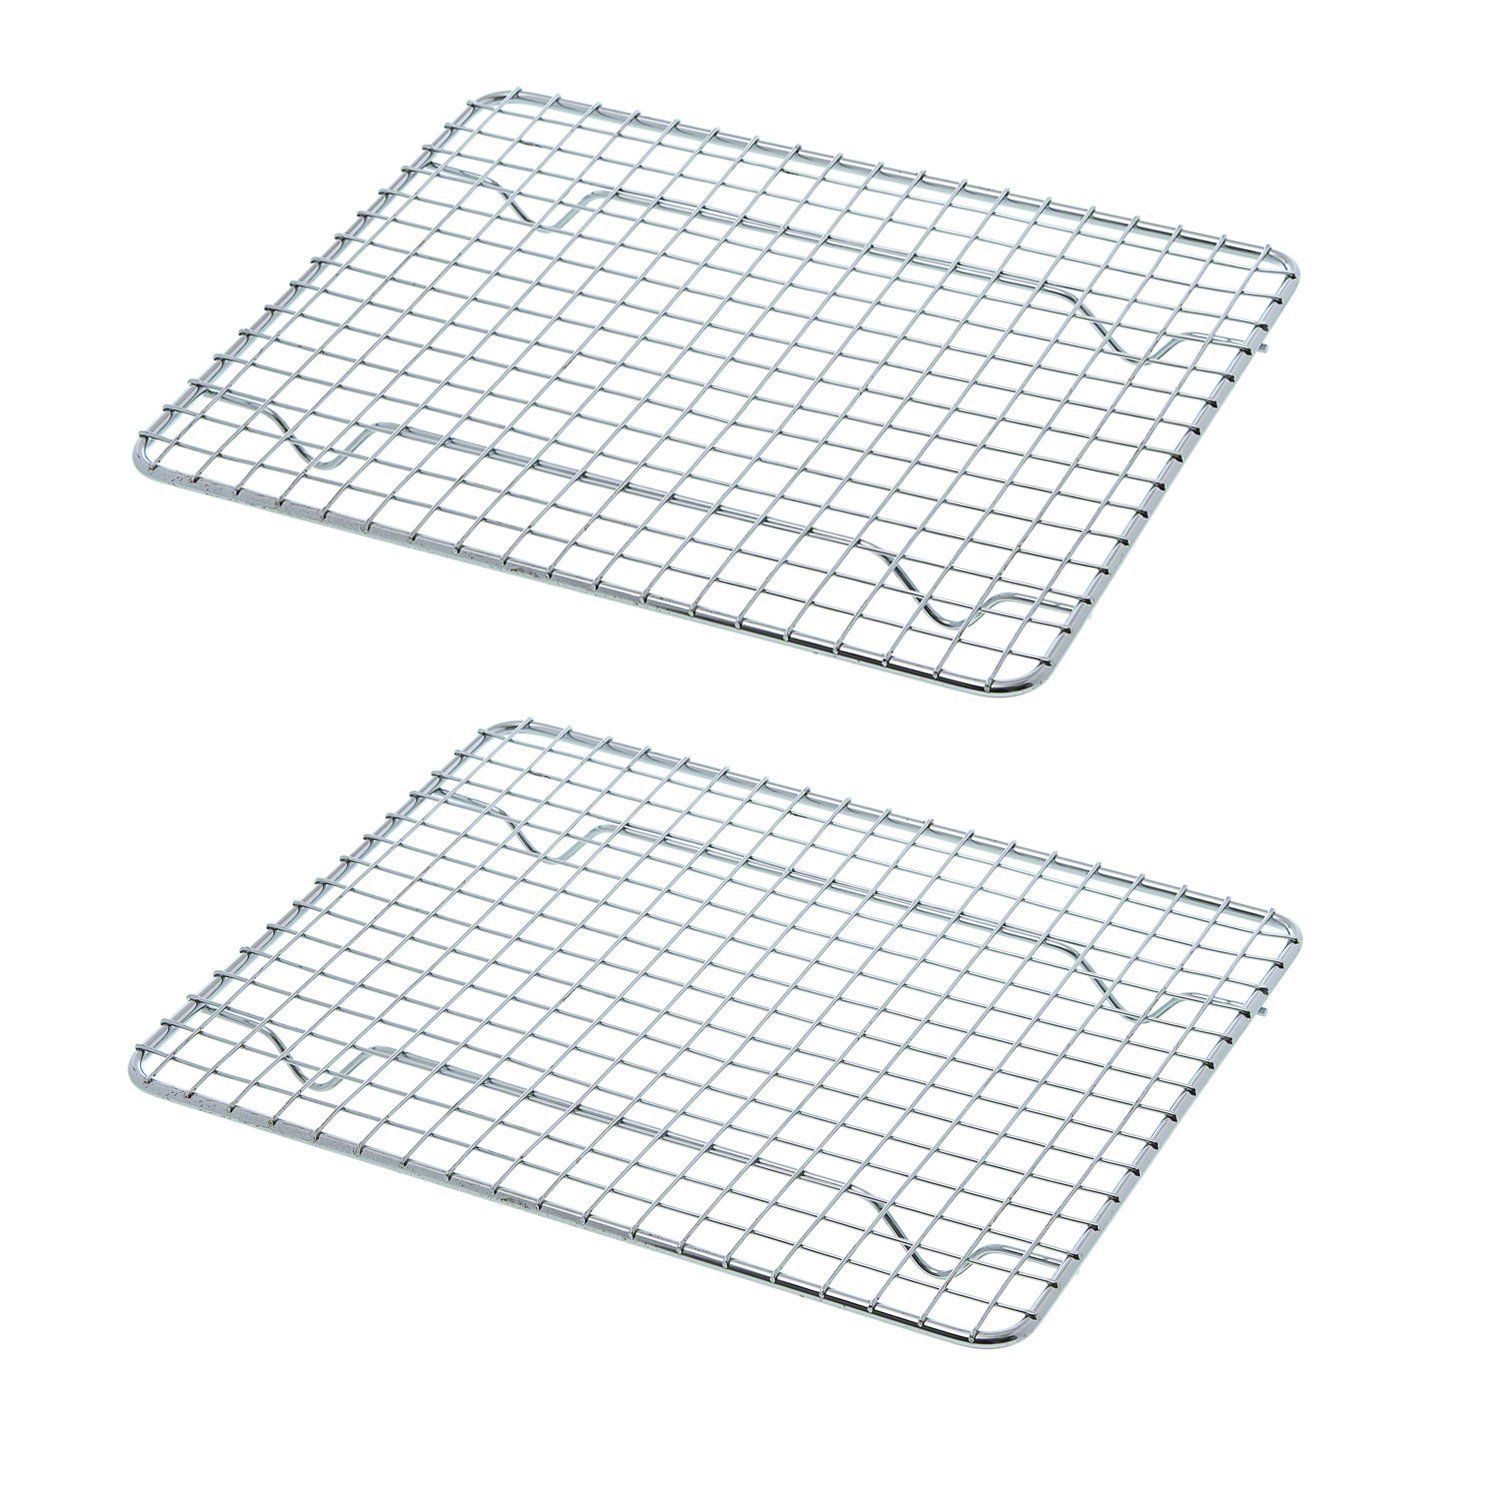 Goson Heavy Duty 1 4 Size Cooling Rack Cooling Racks Wire Pan